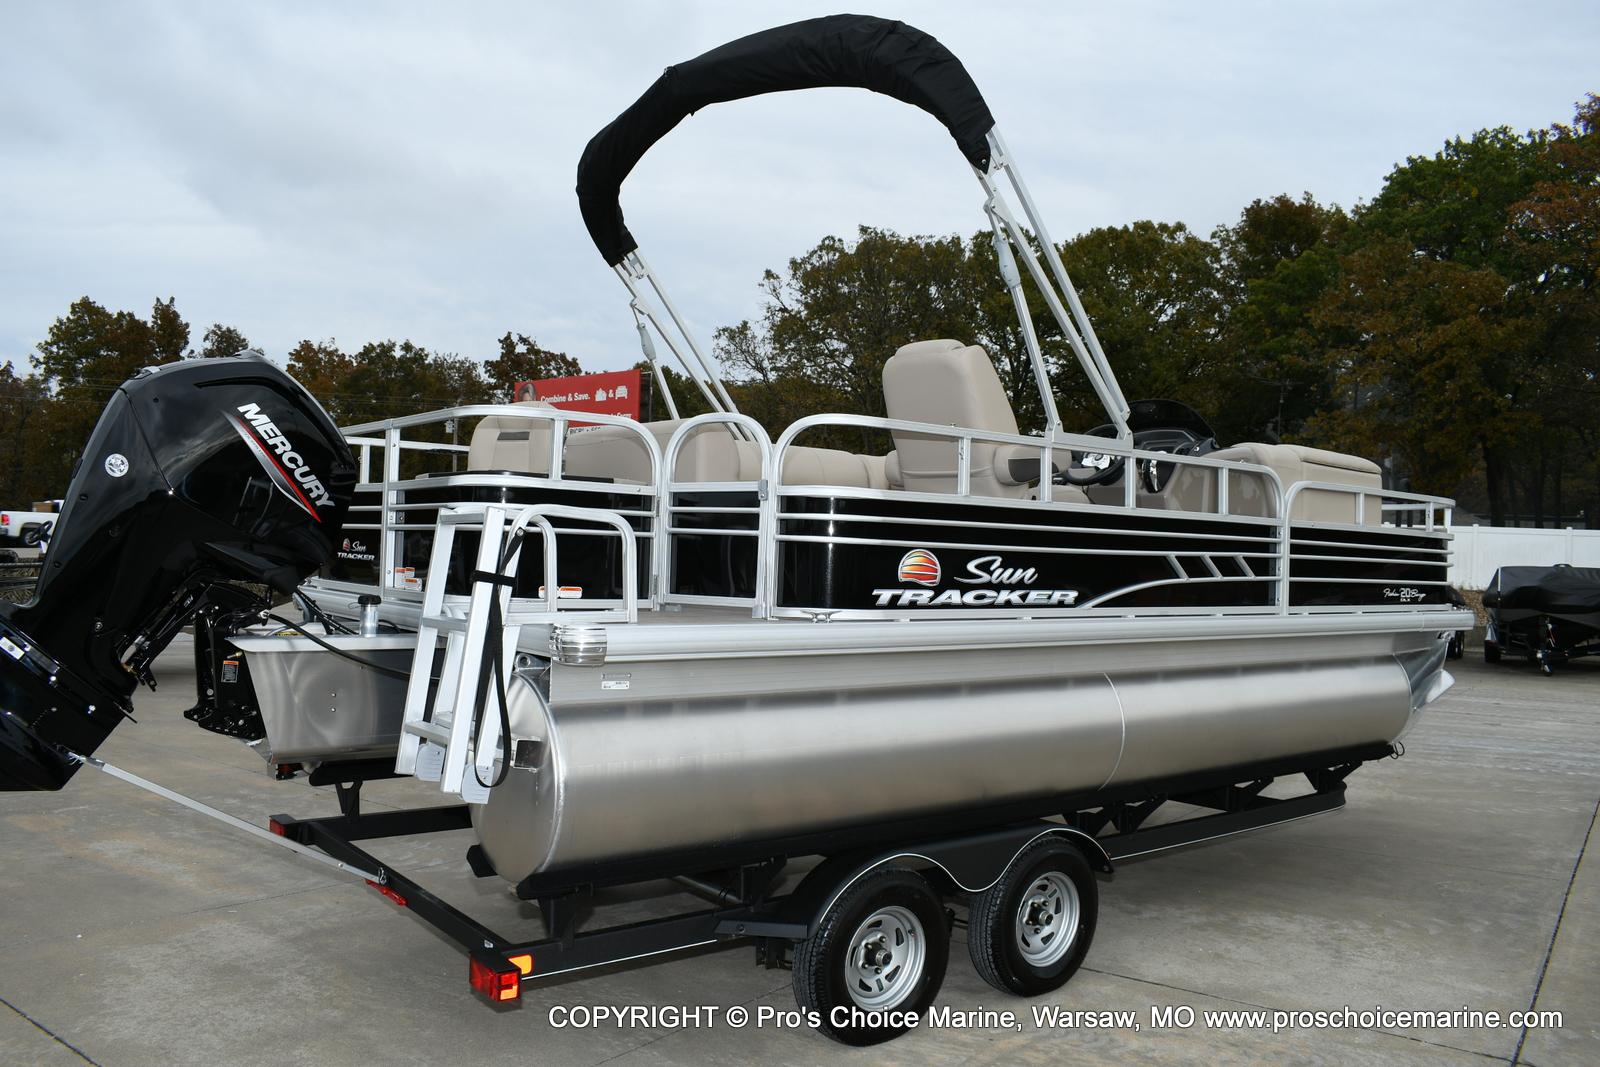 2020 Sun Tracker boat for sale, model of the boat is Fishin' Barge 20 DLX & Image # 28 of 50